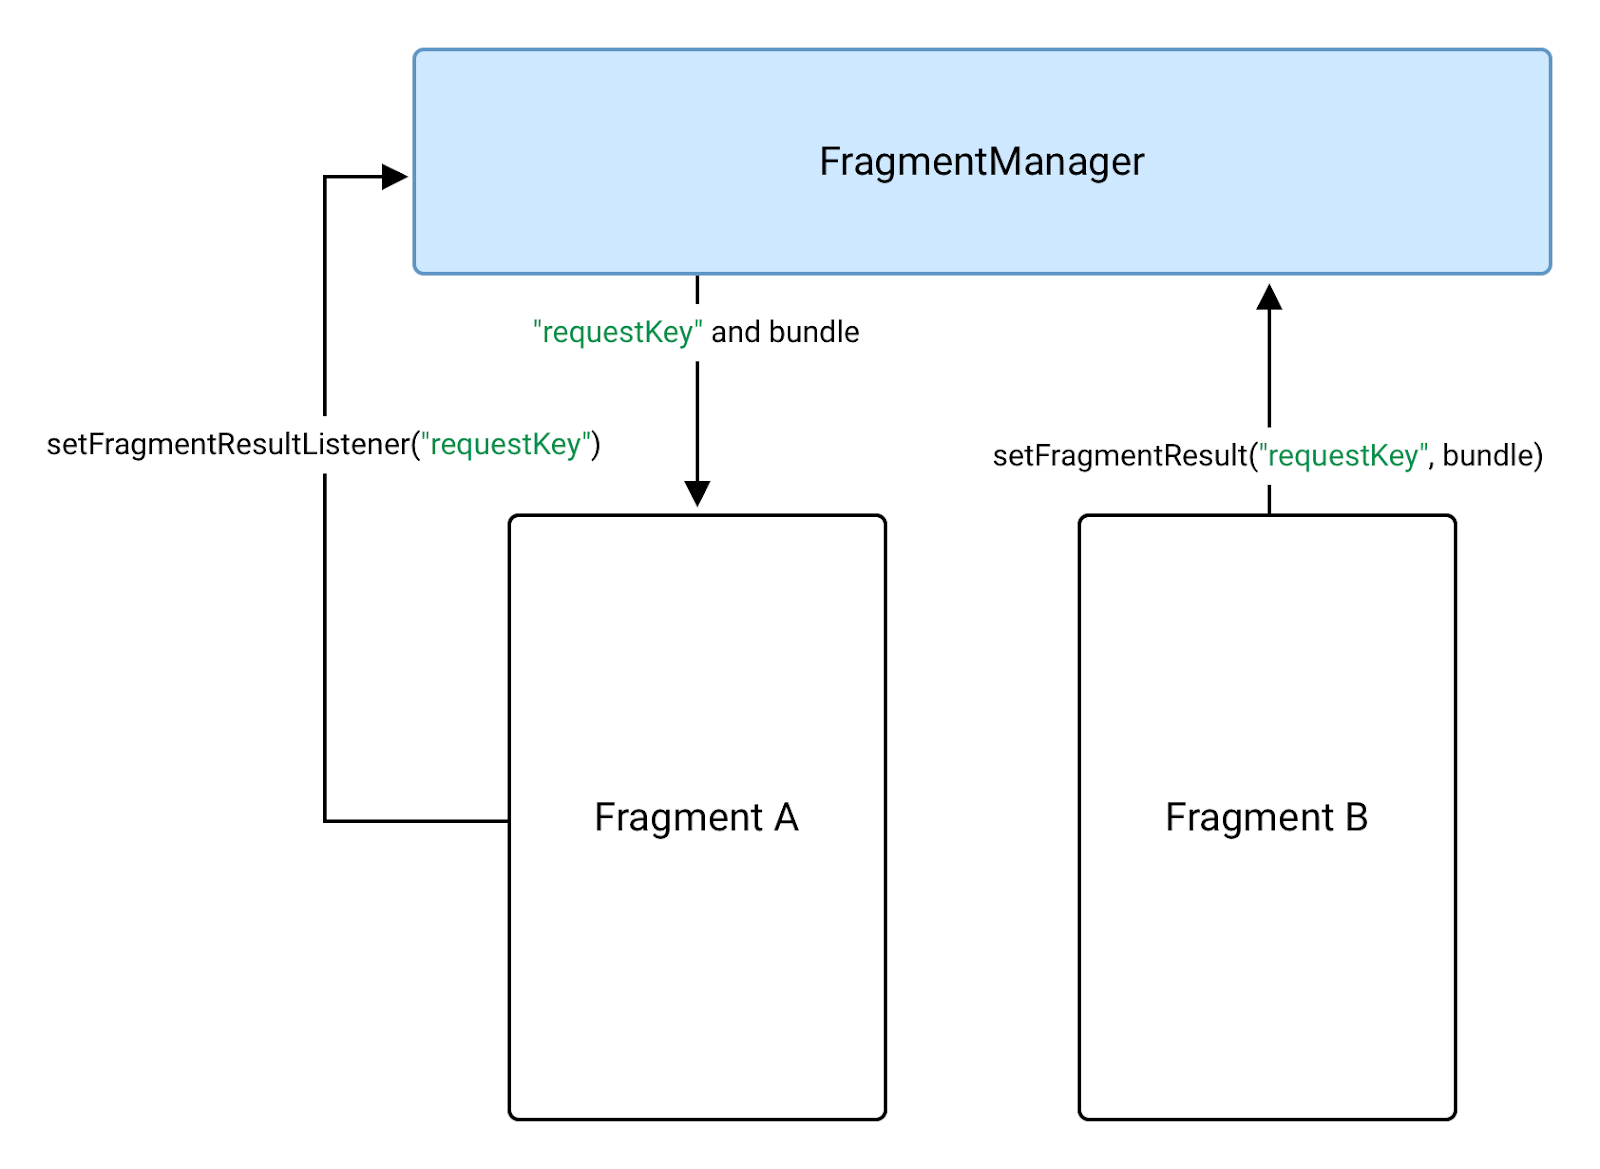 fragment b sends data to fragment a using a FragmentManager